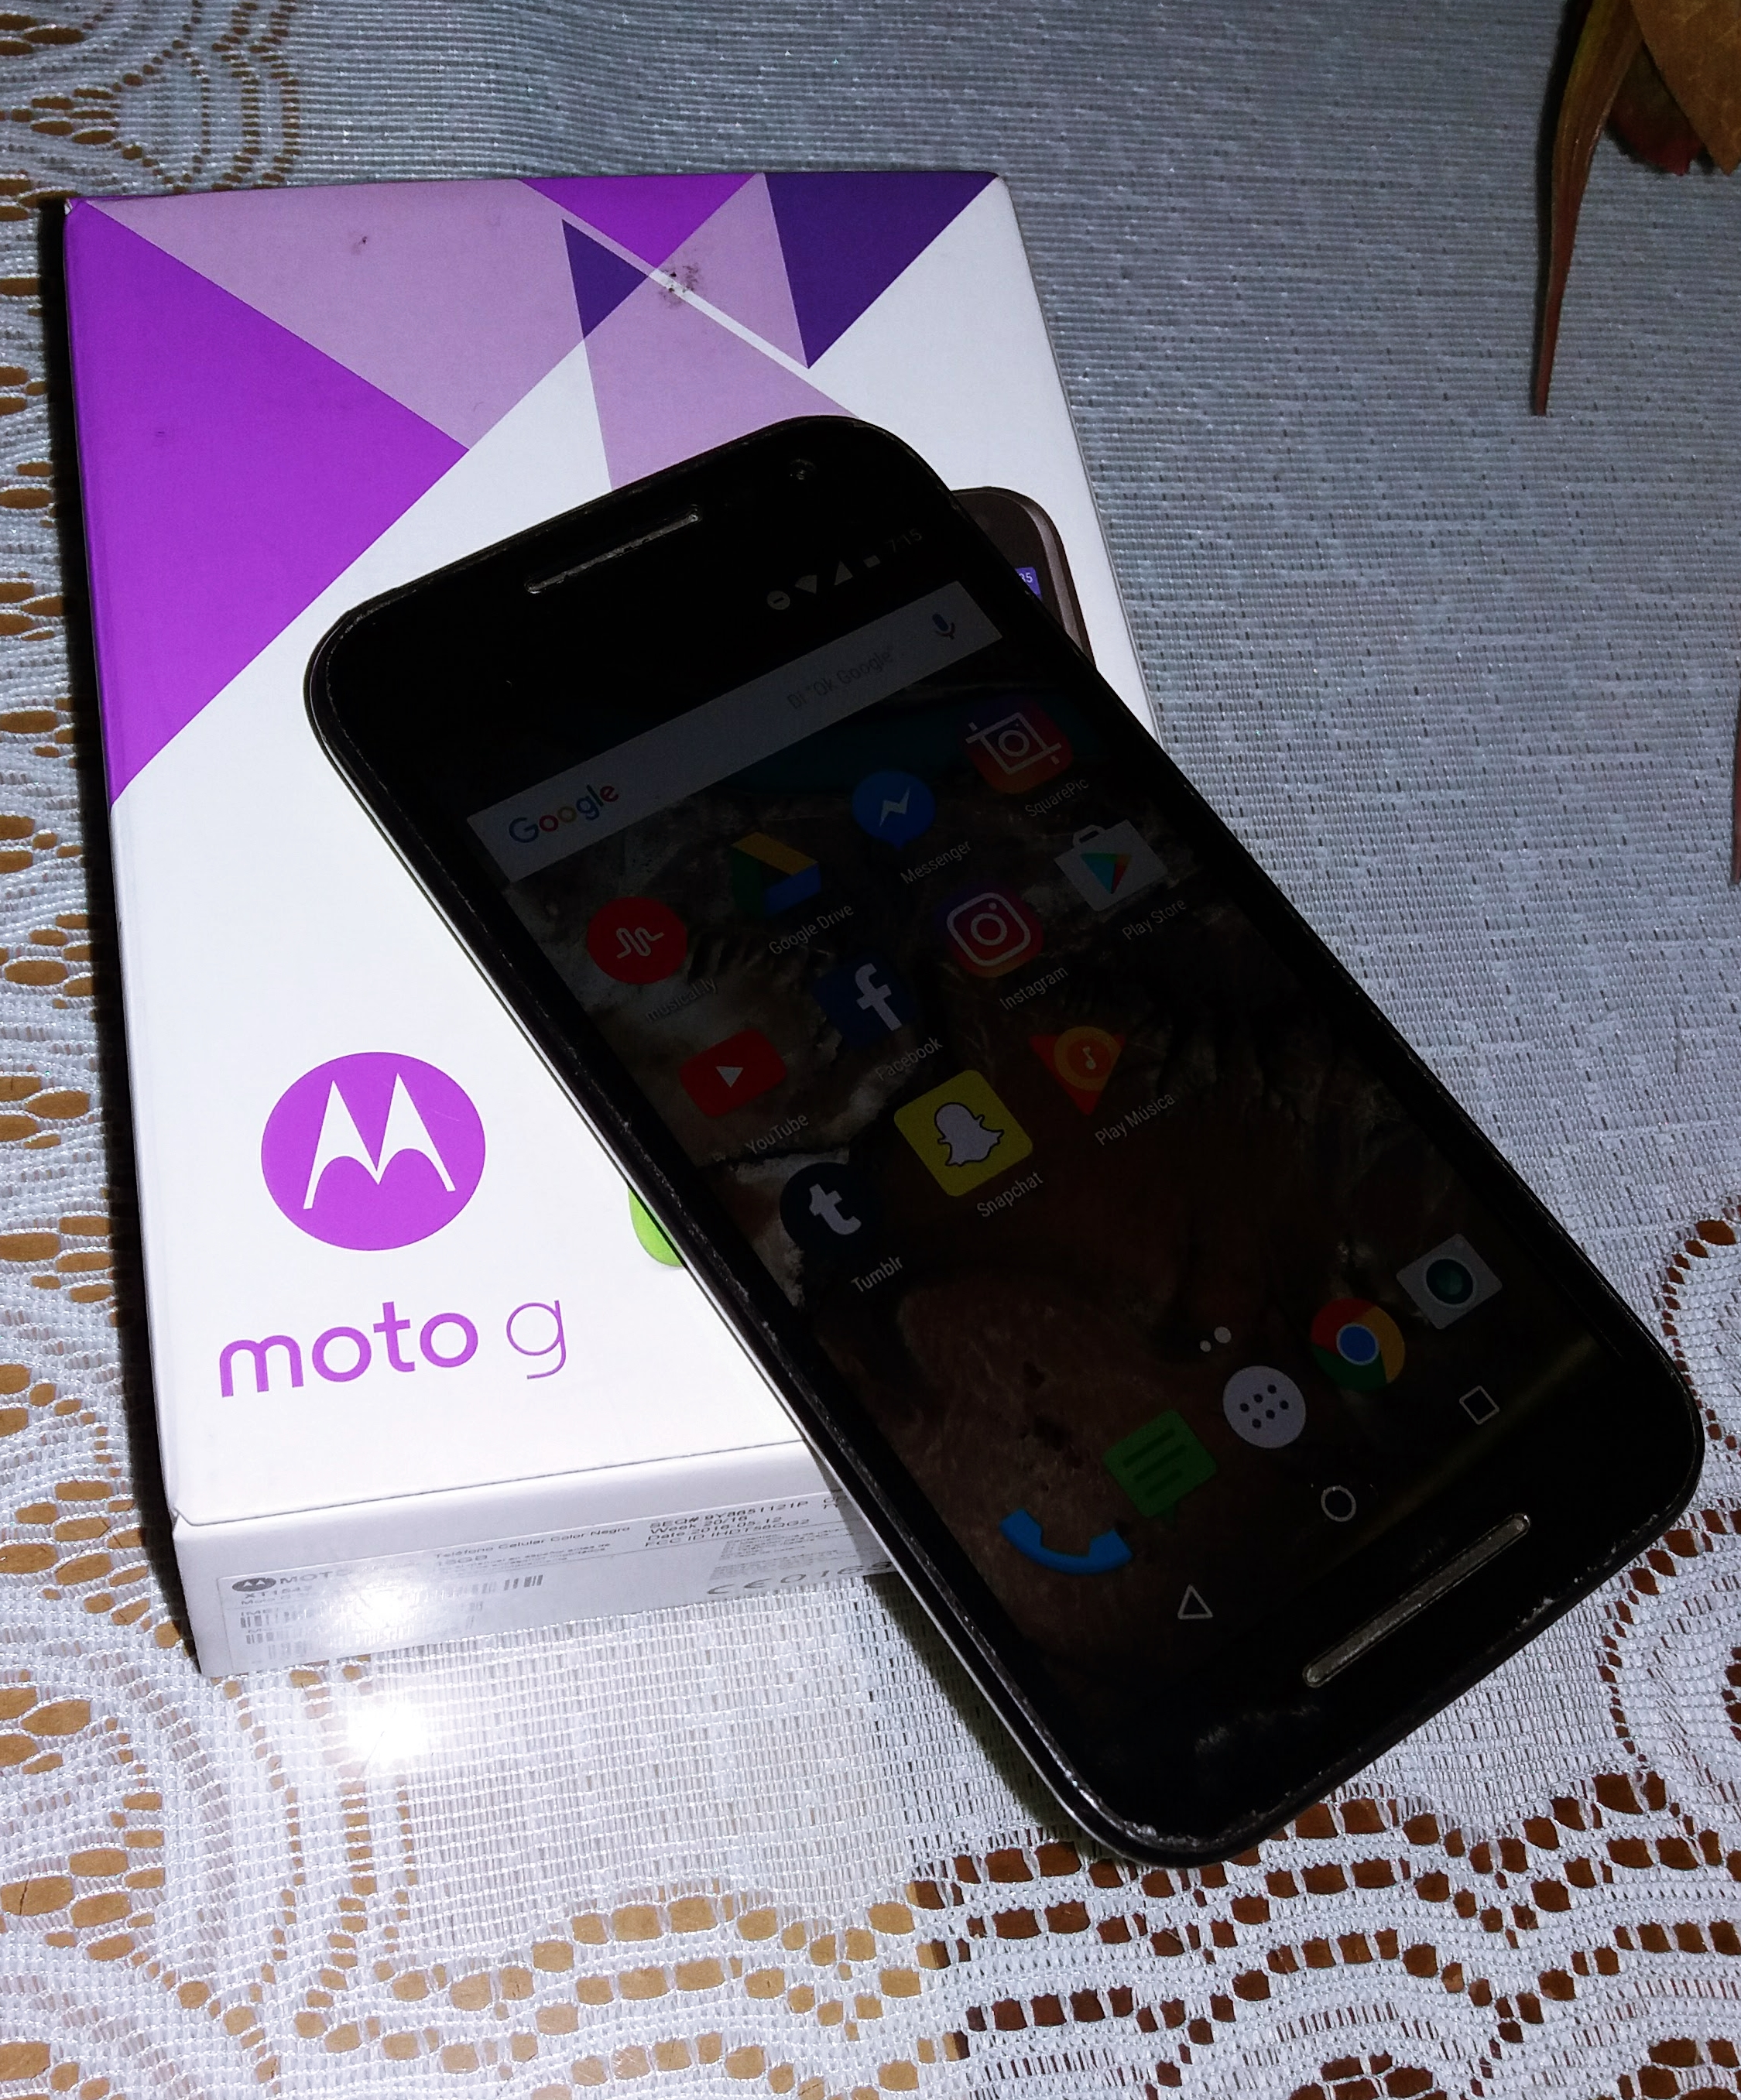 Moto G (3rd generation) - Wikipedia